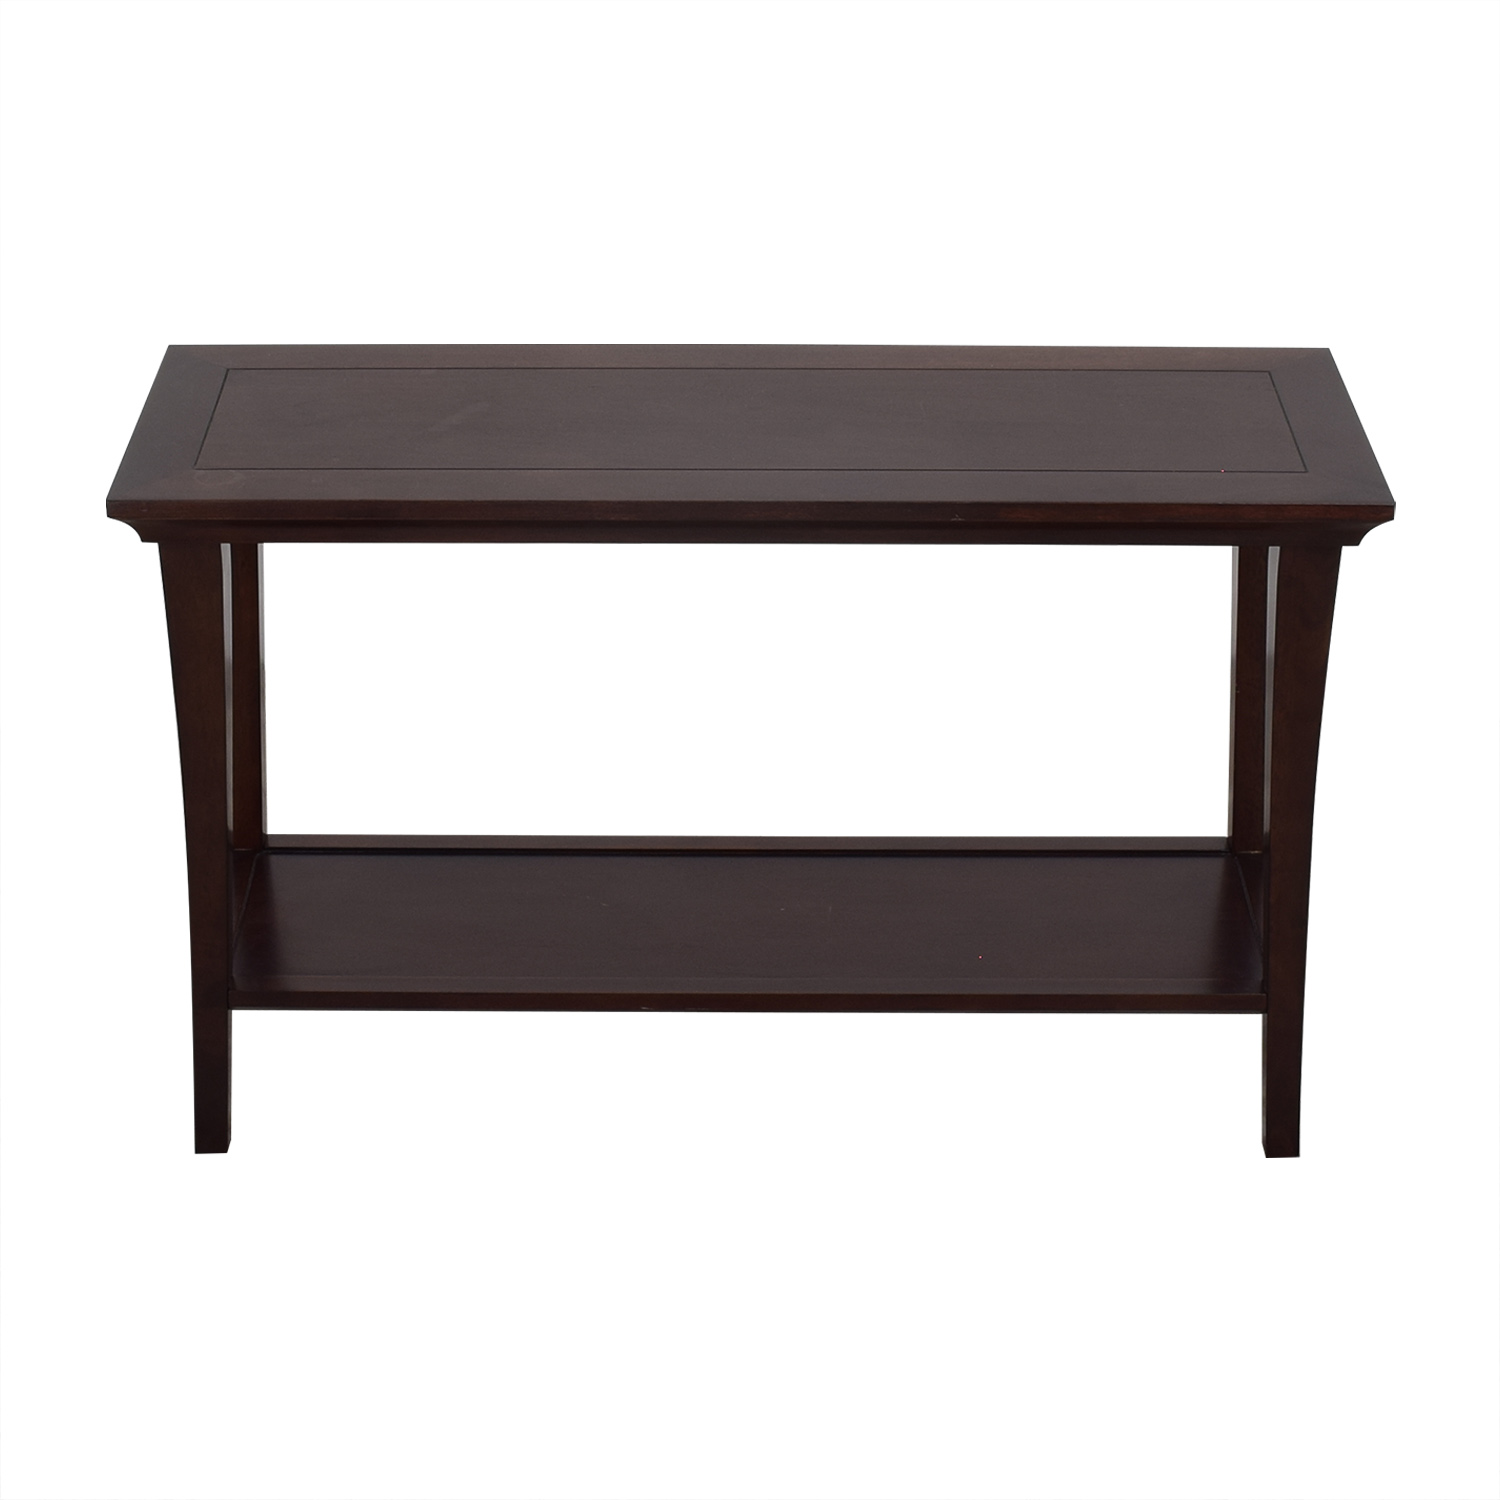 Pottery Barn Pottery Barn Metropolitan Console Table coupon